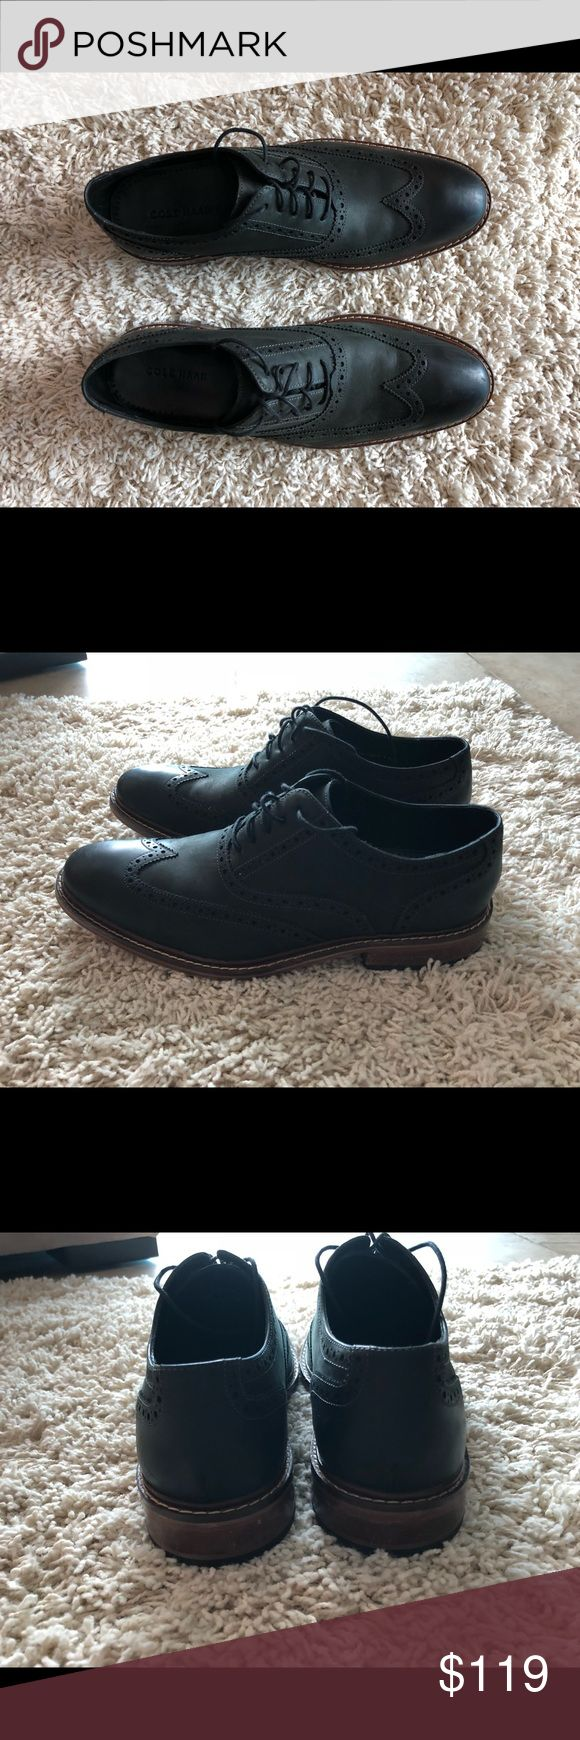 "Cole Haan 11 M"" Preowned Cole Haan men shoe 11"", still in good condition. True to size. Thank you😊. Cole Haan Shoes Sneakers"